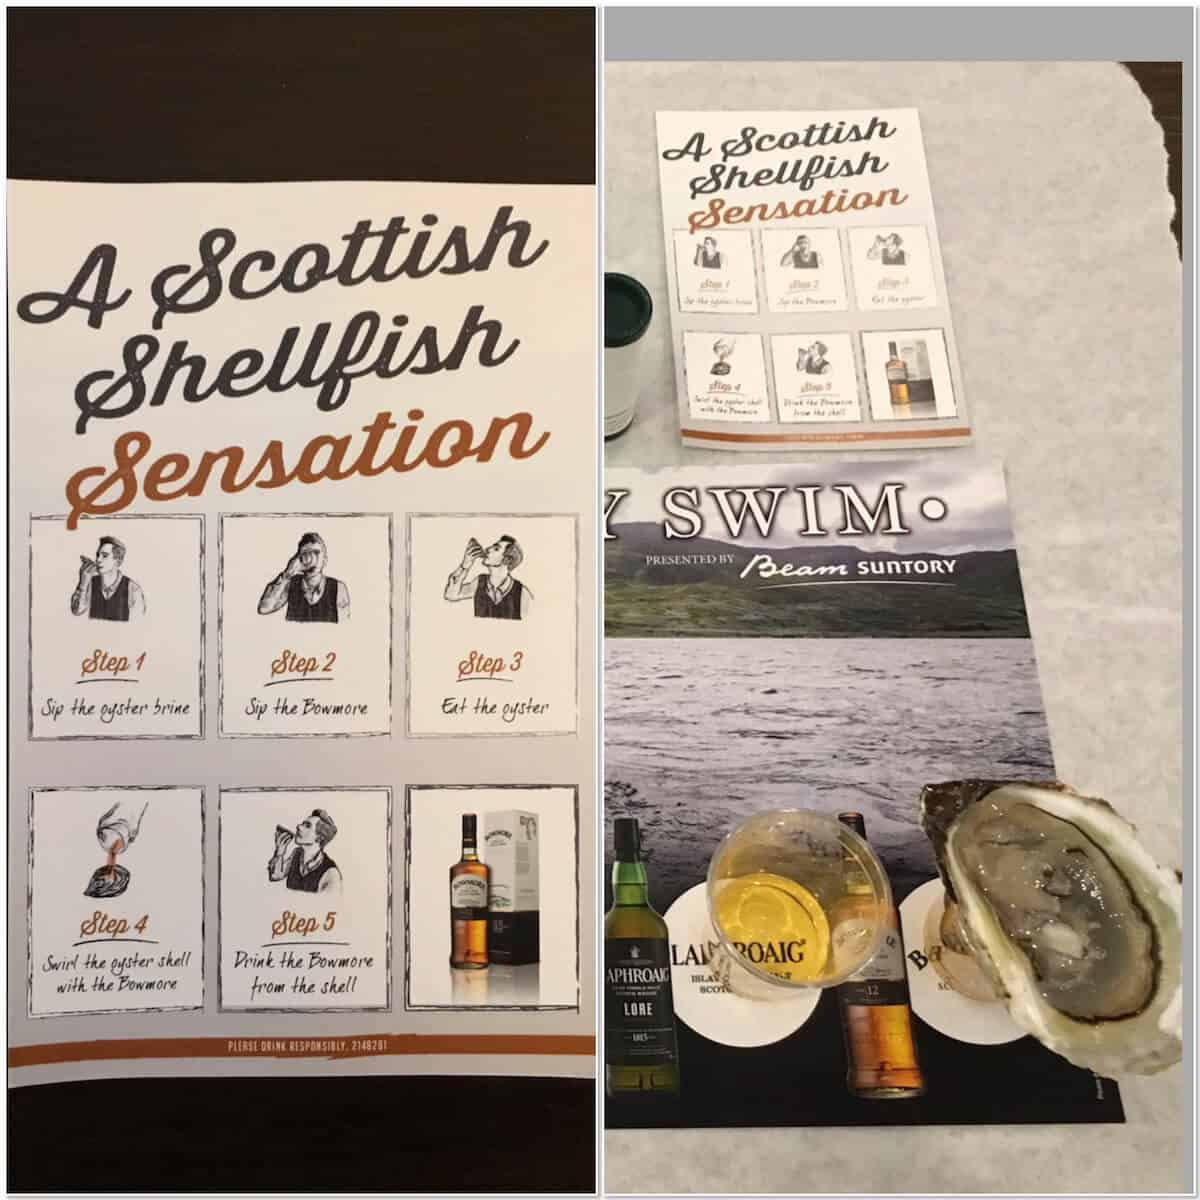 Guide to tasting oysters before sampling Laphroaig Lore.